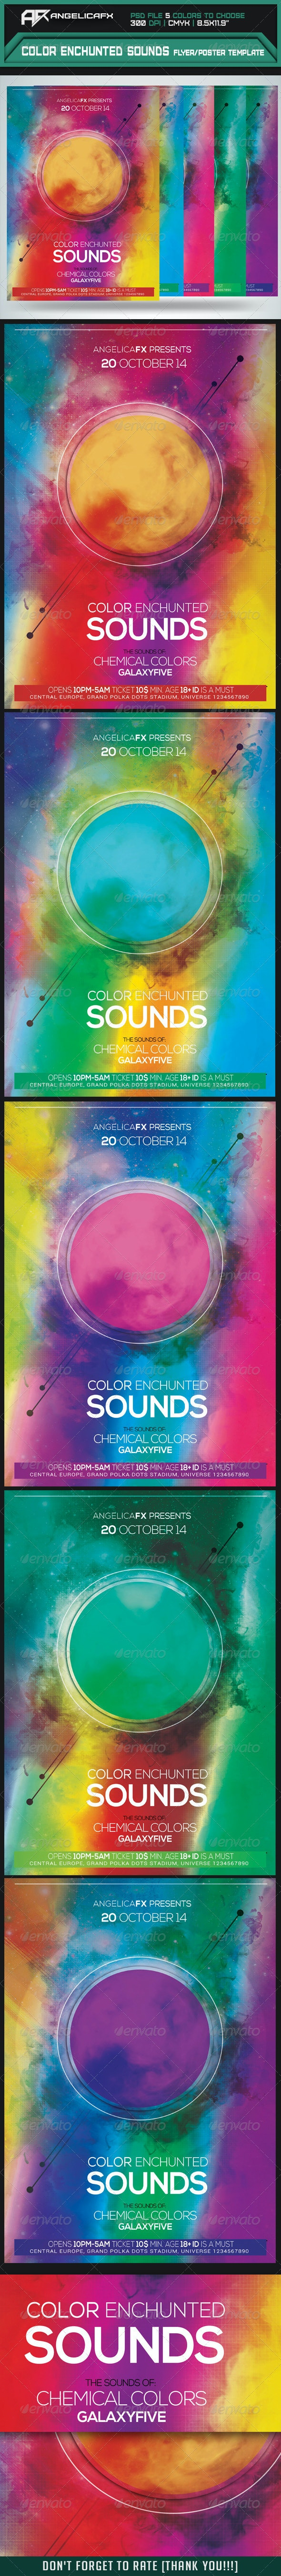 Color Enchunted Sounds Flyer/Poster Template - Flyers Print Templates